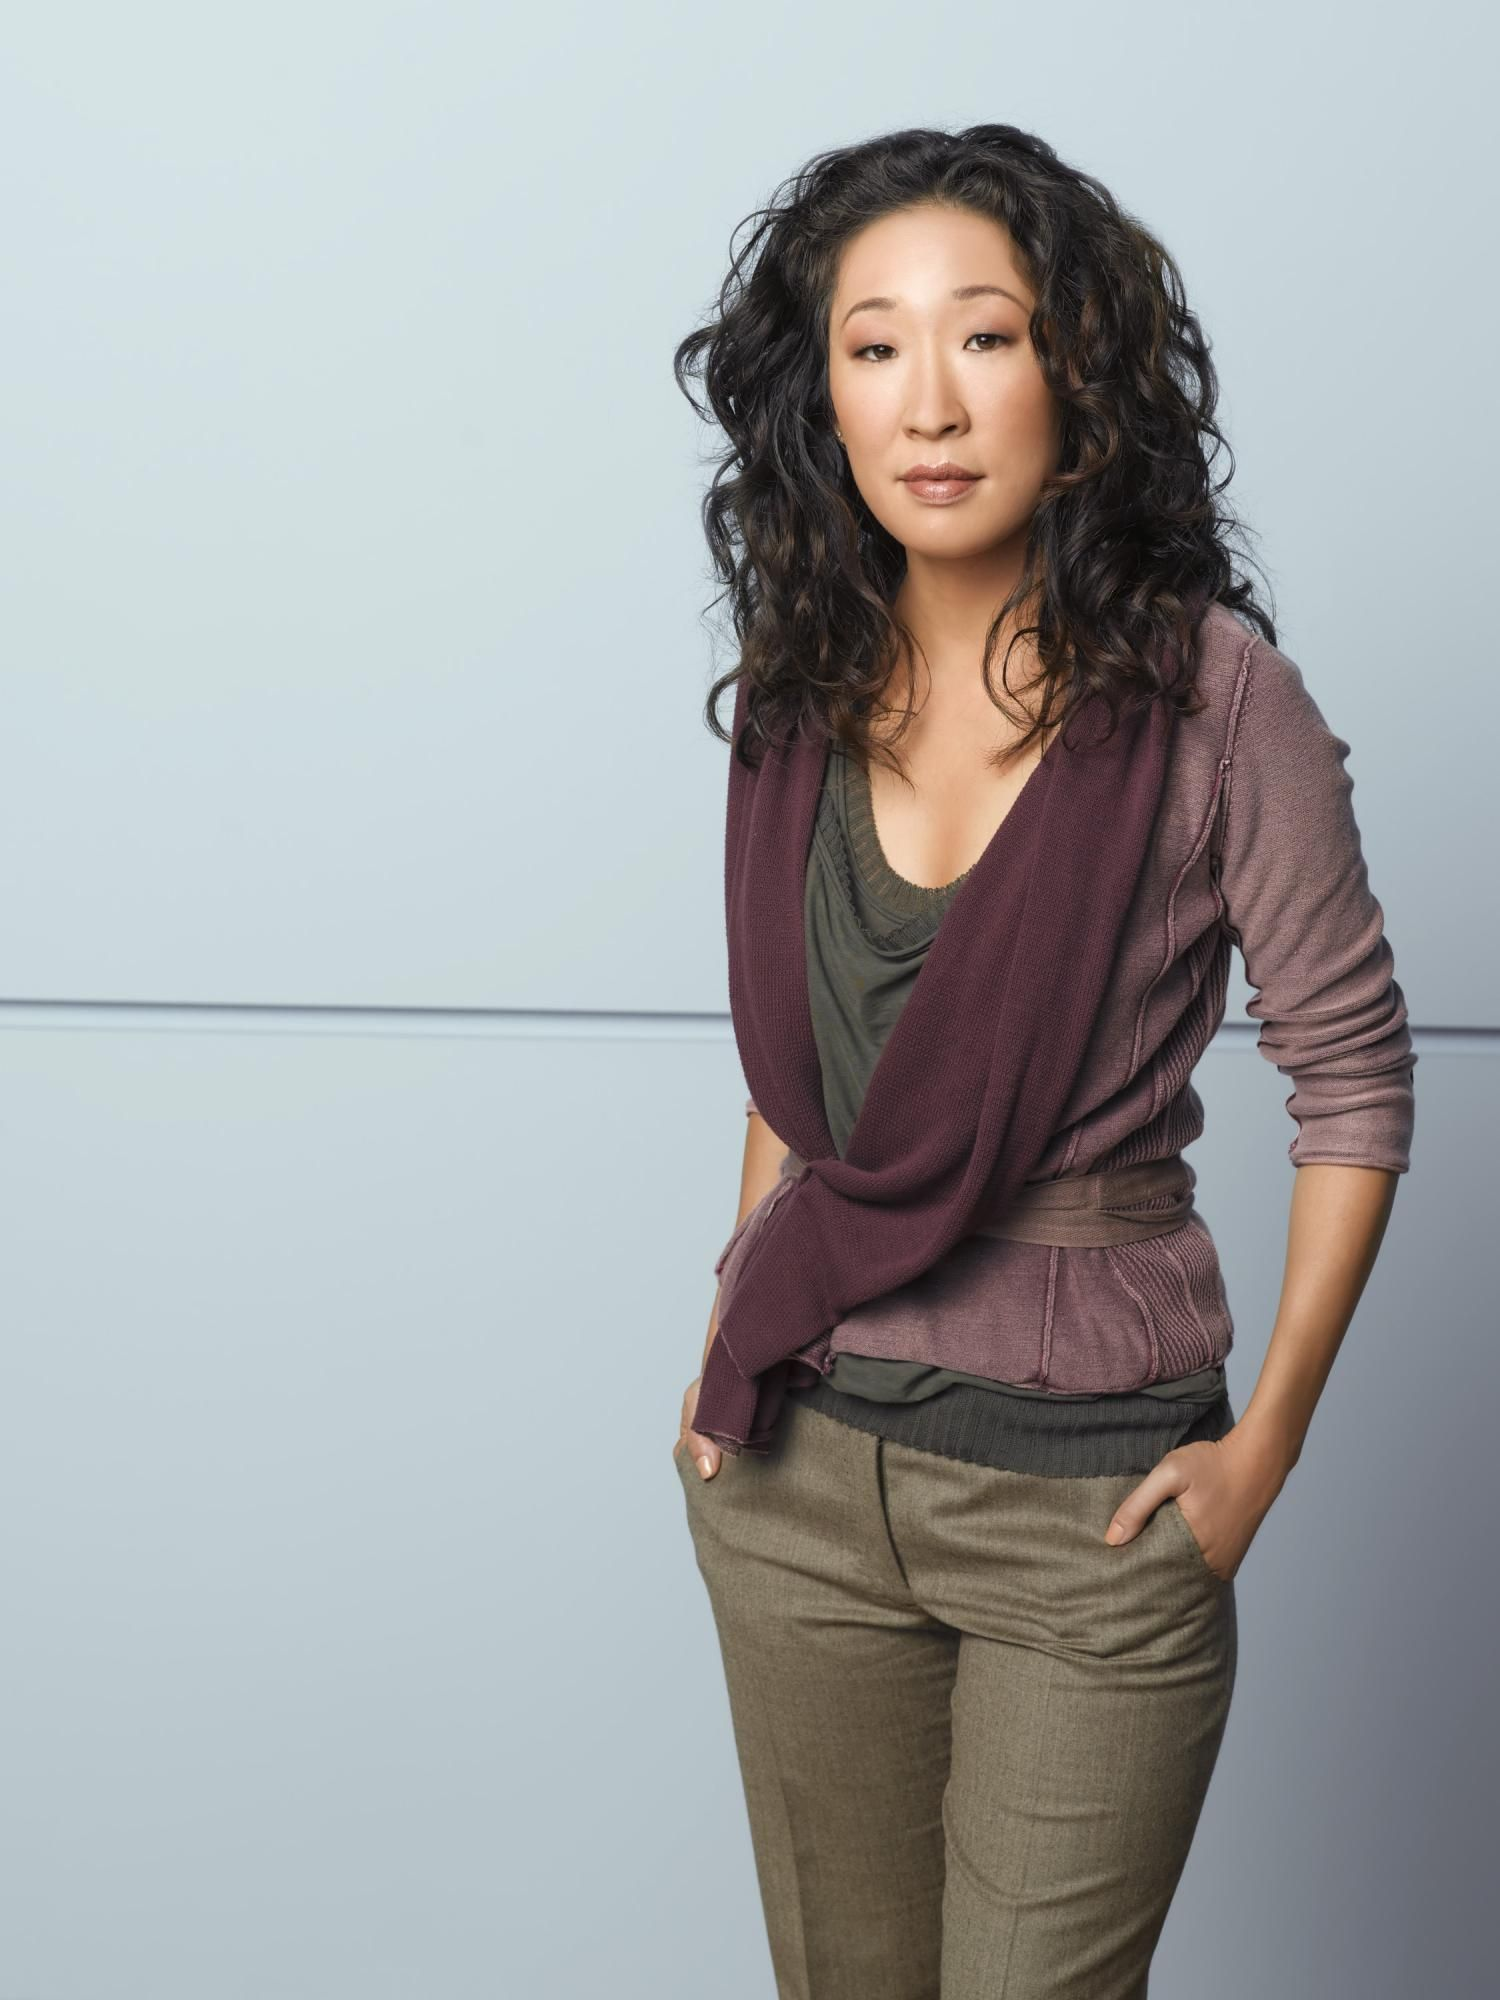 Sandra Oh born July 20, 1971 (age 47) nudes (54 pictures), young Tits, YouTube, swimsuit 2018